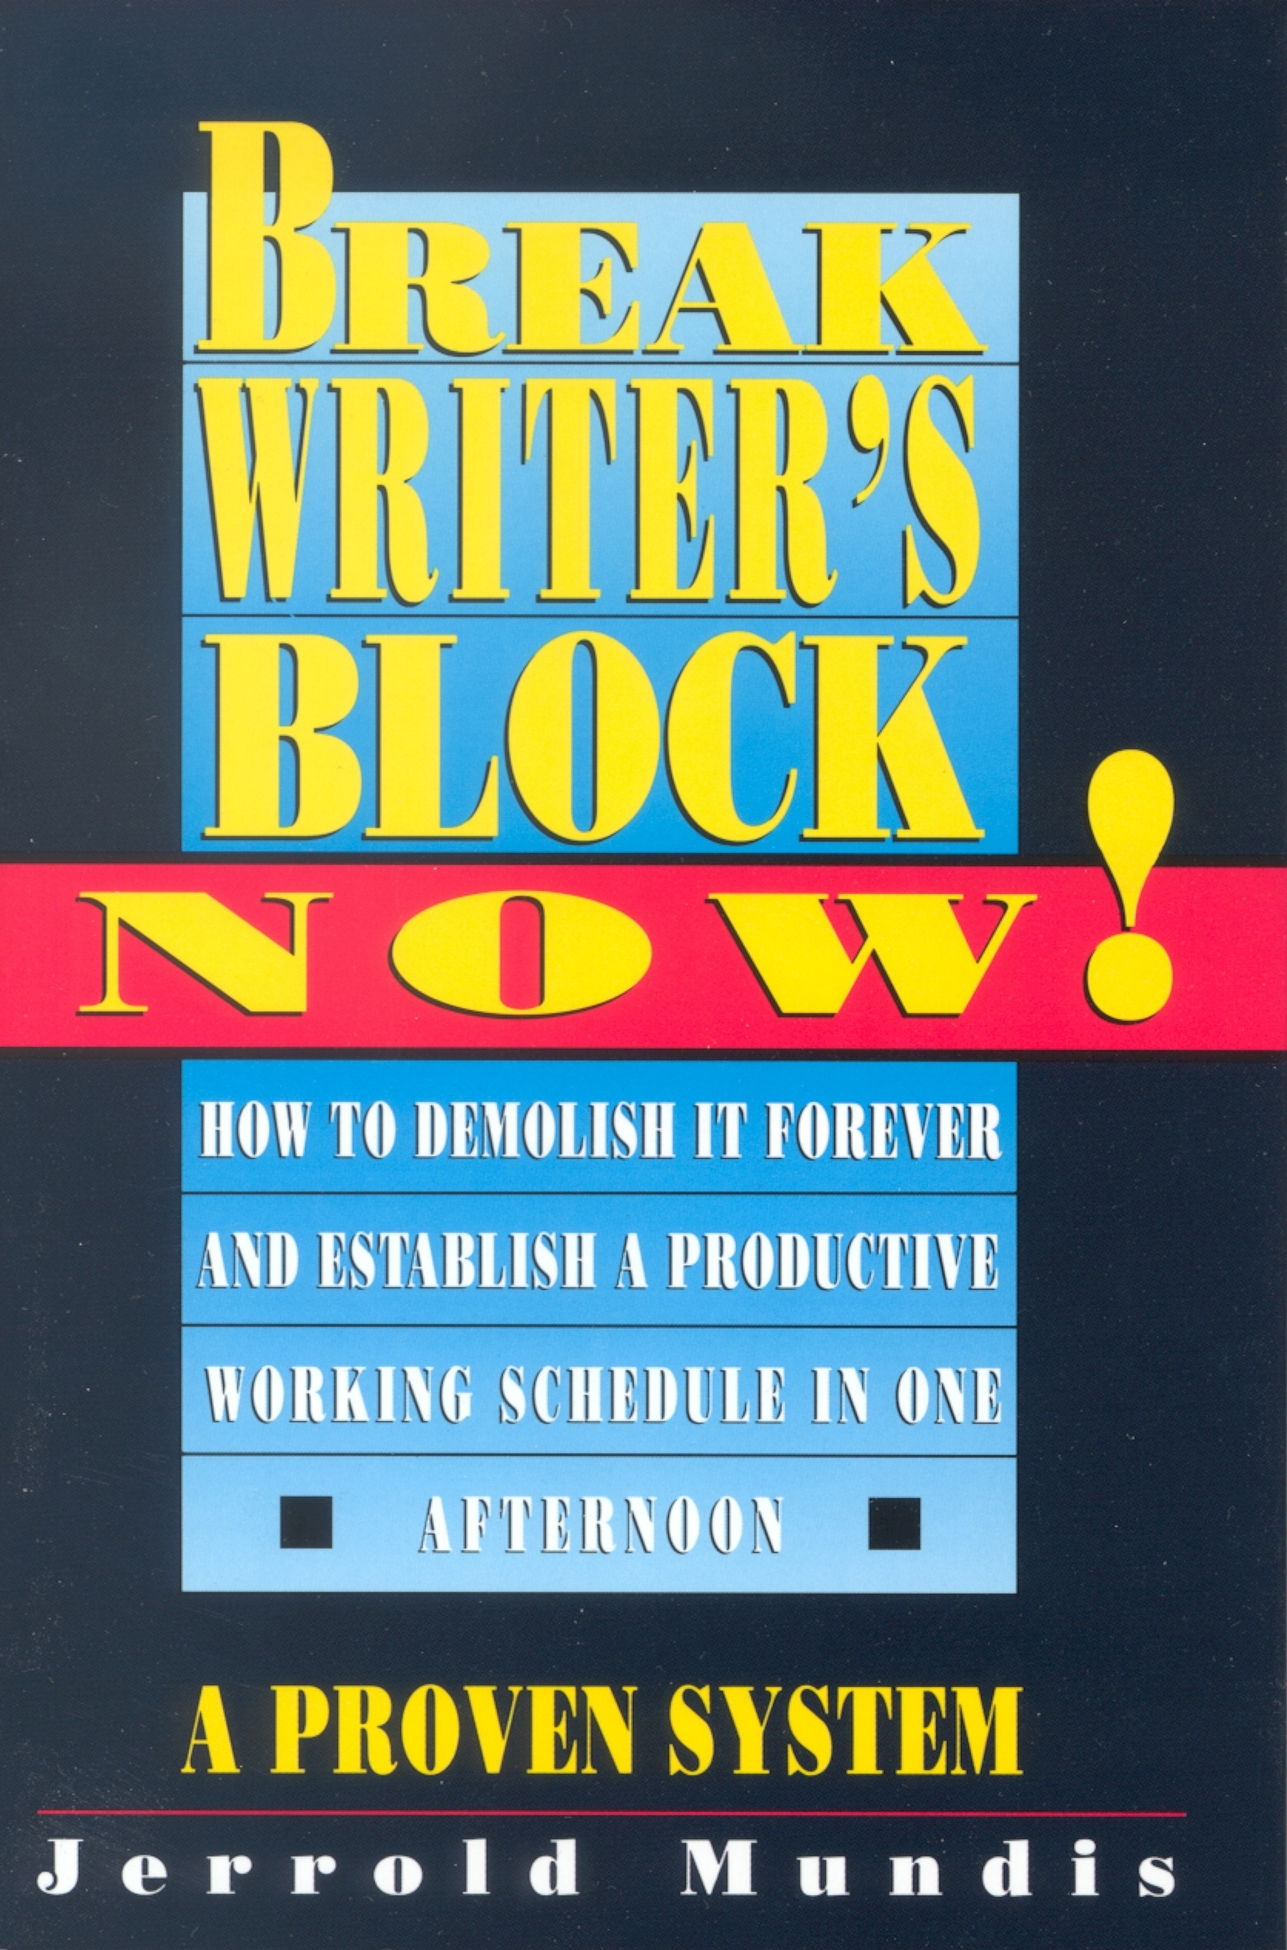 Break Writer's Block Now!